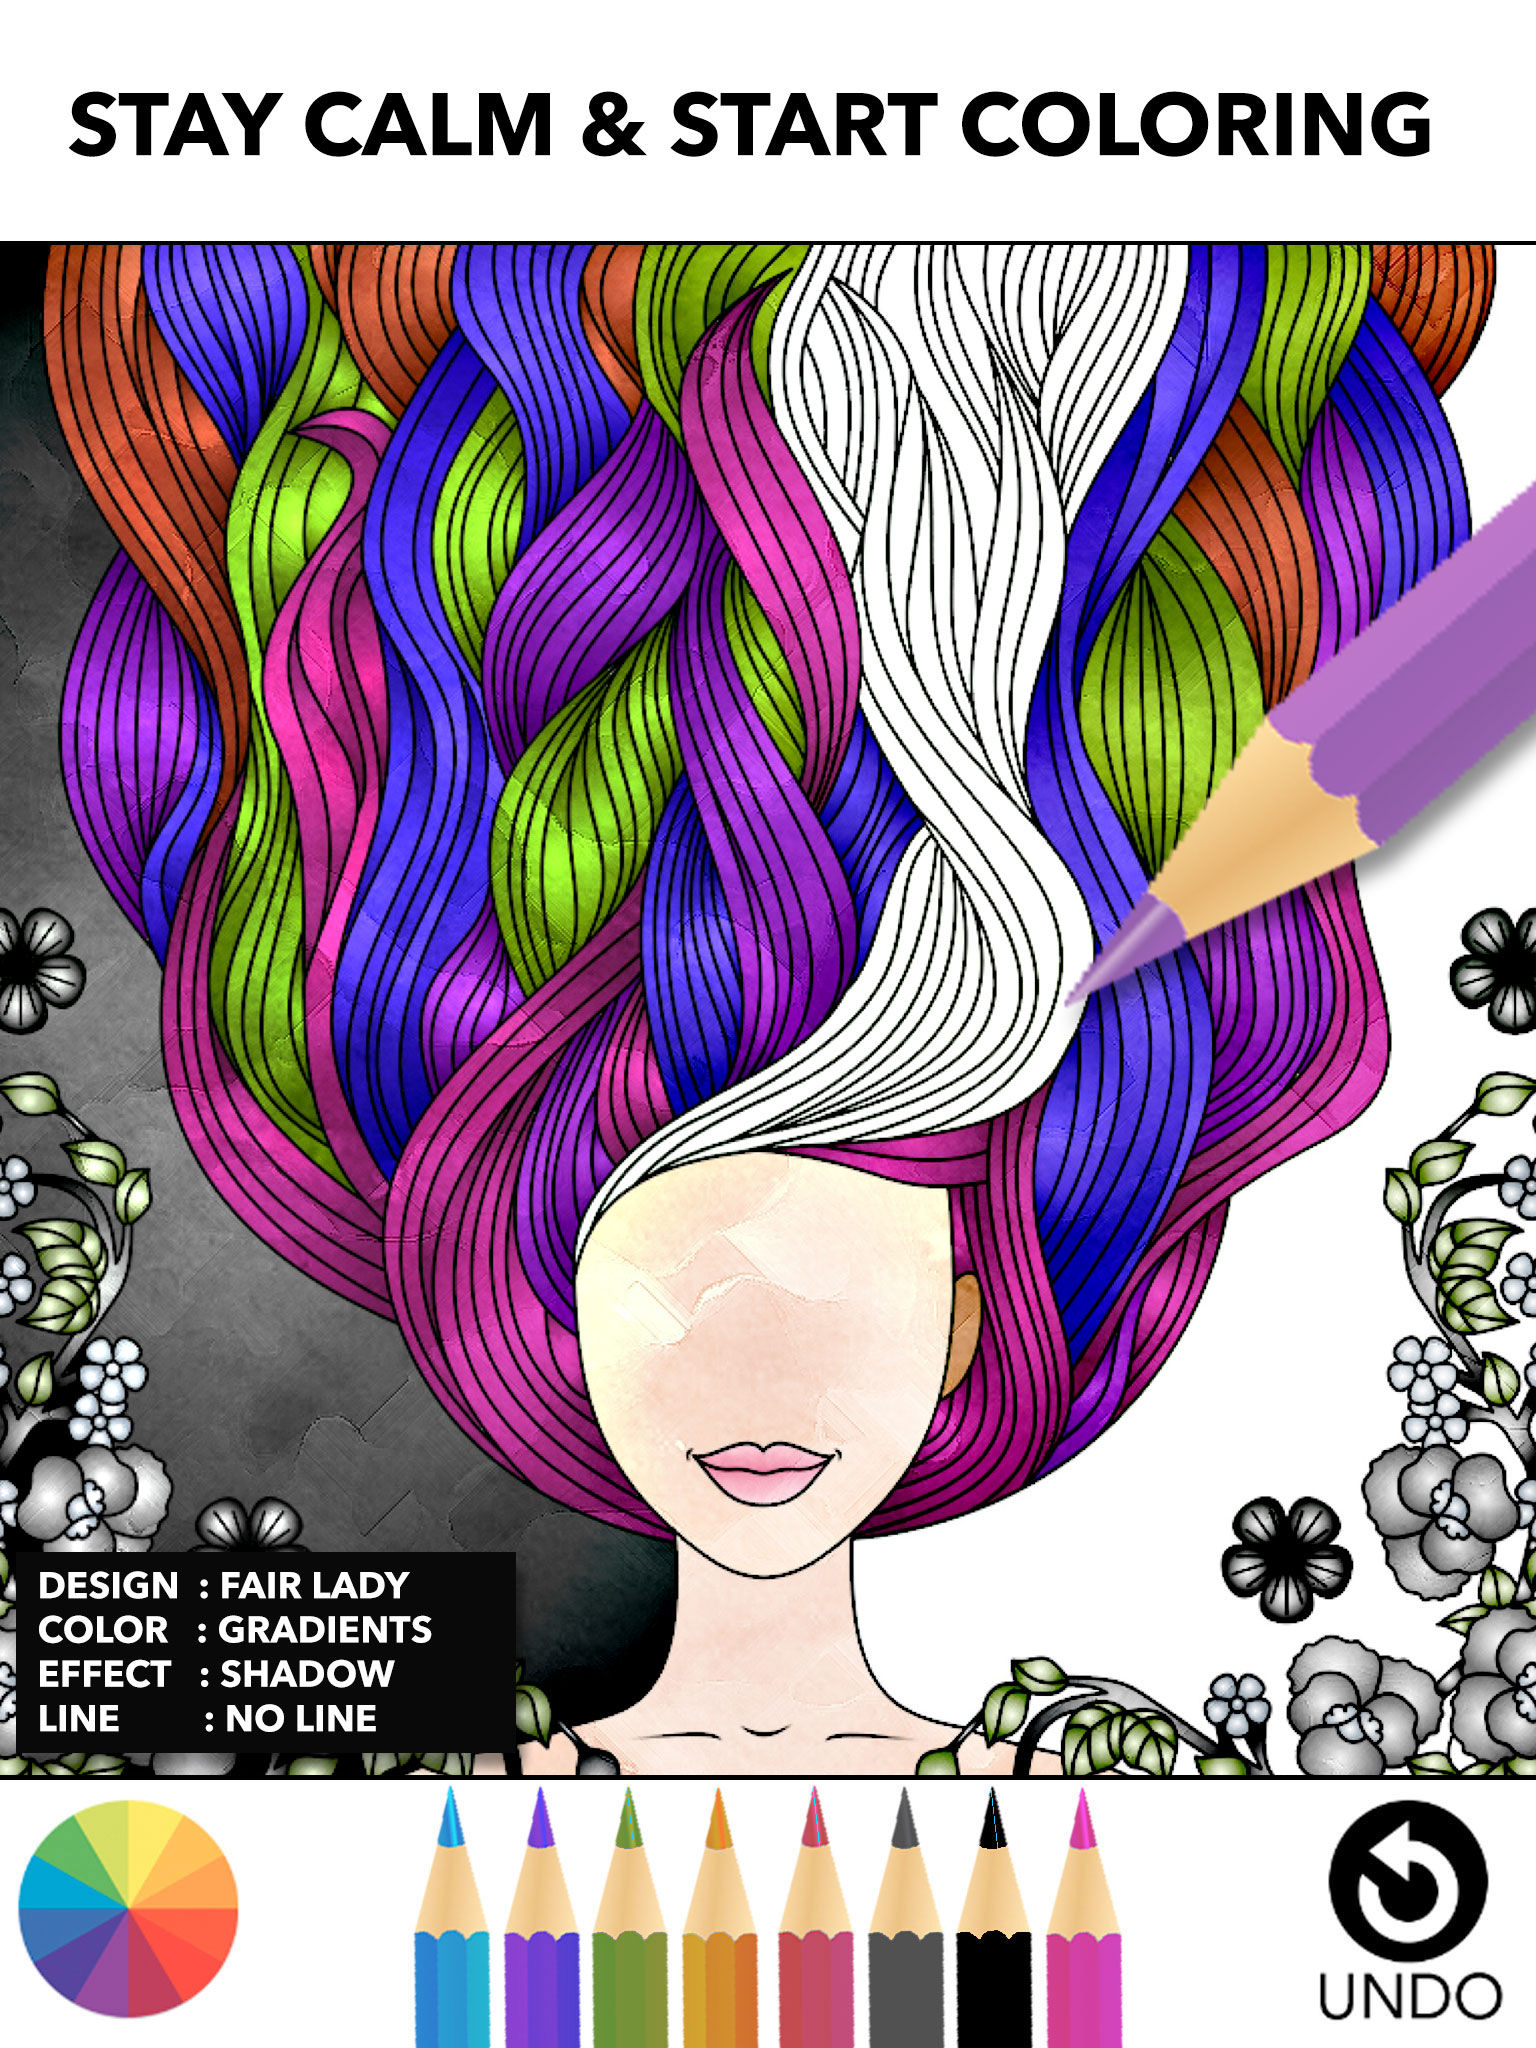 Color therapy anti stress coloring book app - Color Therapy Miinu App Description